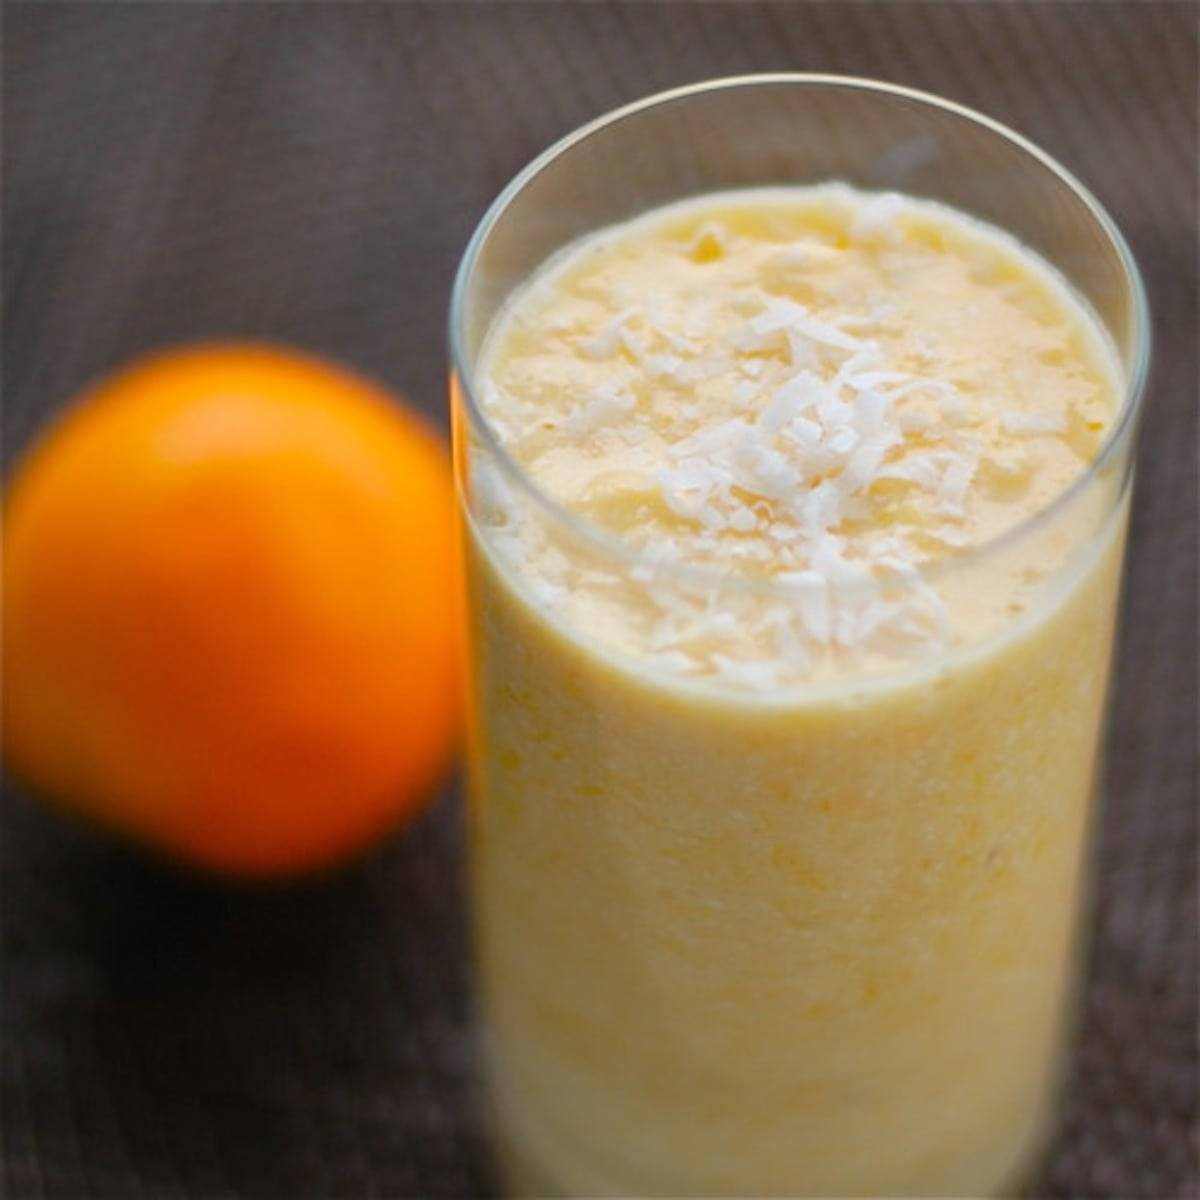 Coconut pineapple orange smoothie in a glass next to an orange.